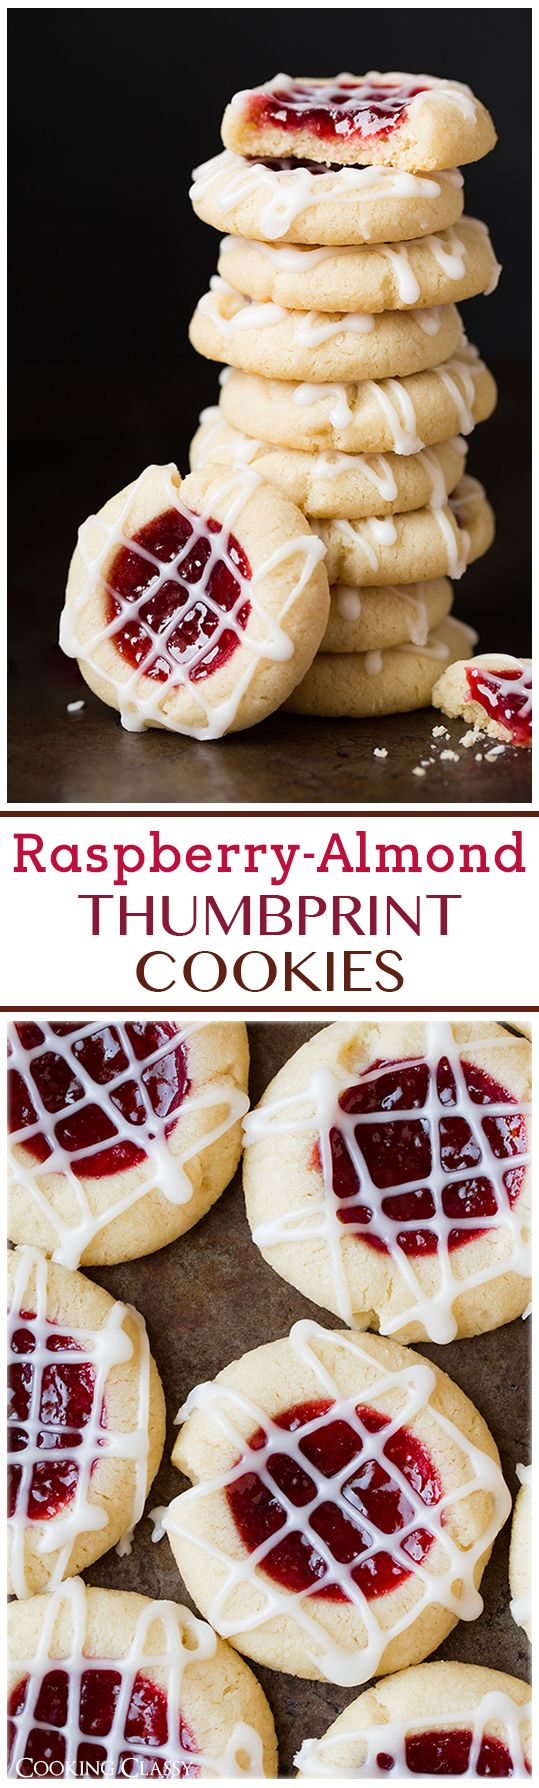 Raspberry Almond Shortbread Thumbprint Cookies - these are one of my FAVORITE Christmas cookies!